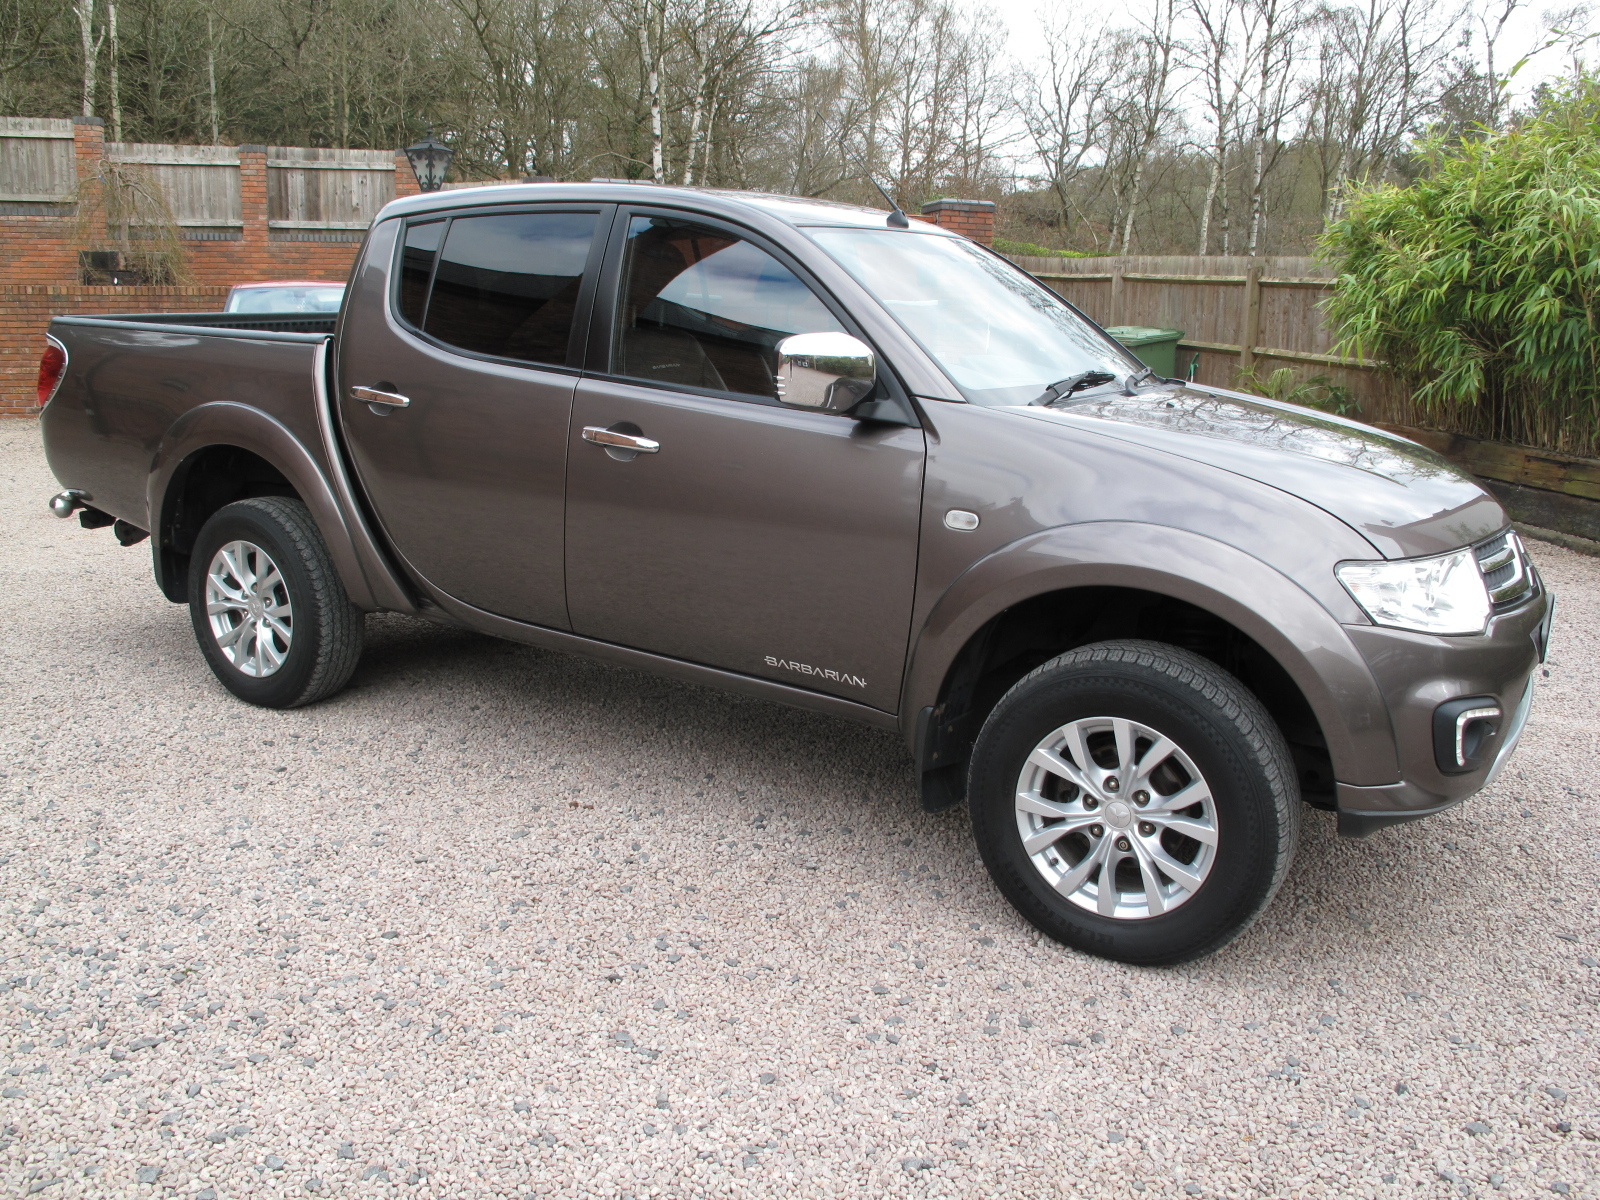 2014 64 Mitsubishi L200 2.5 DI-D CR Barbarian 176 LBDouble Cab Pickup 4WD ABSOLUTELY PRISTINE! ONLY USED AS A CAR! LOW MILES! NO VAT! full